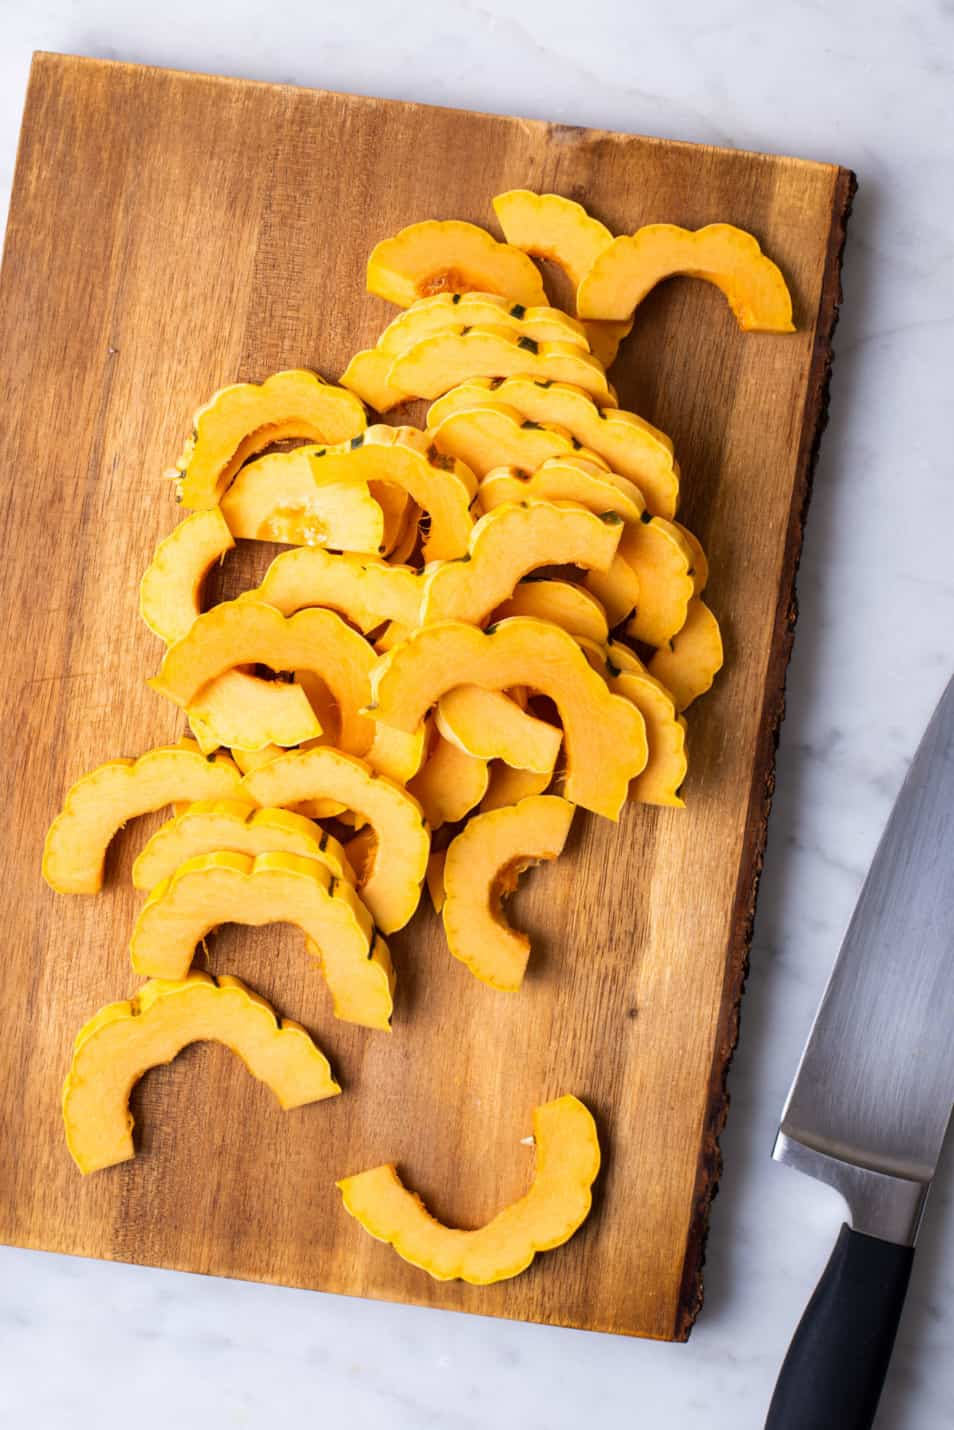 Slices of raw delicata squash on a wooden cutting board